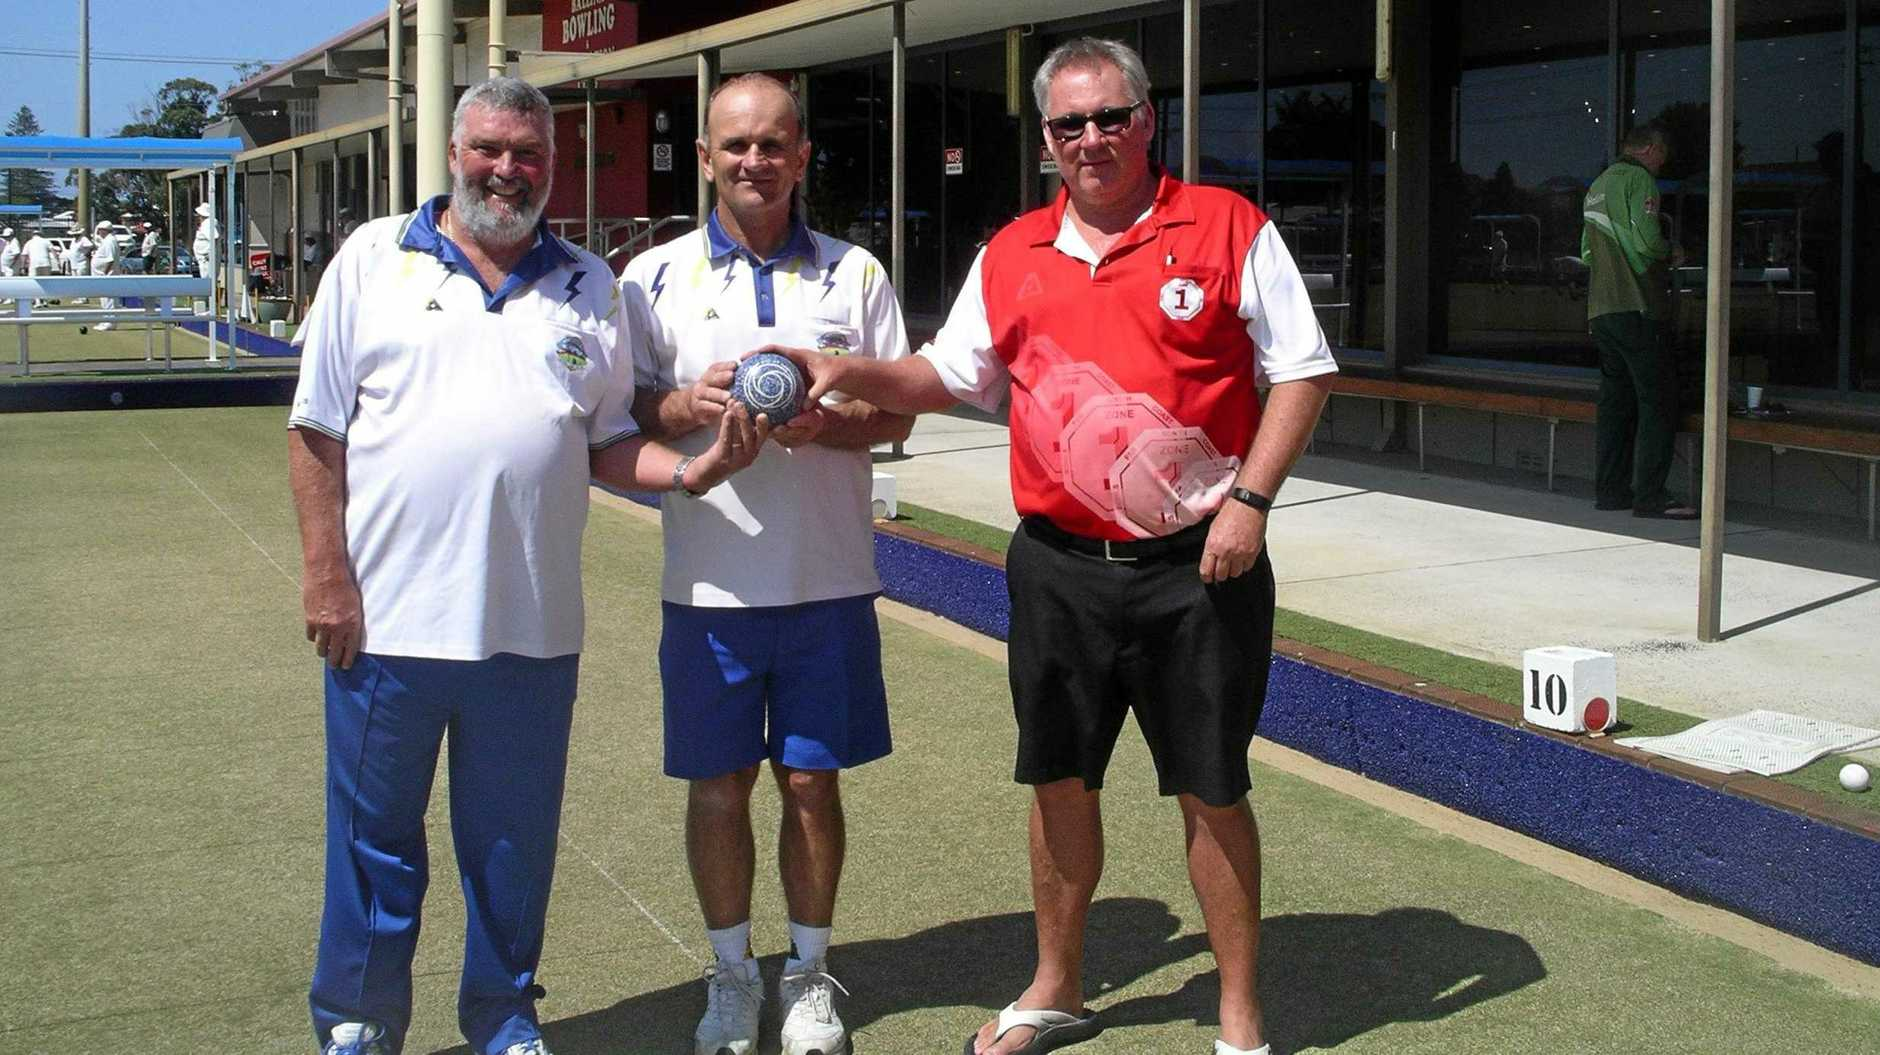 DOUBLE TROUBLE: Lismore Heights bowlers Steve Clarke and Warren Rixon, won the Group State Over 40's Pairs. They are congratulated by Zone One president Kris Lehfeldt.